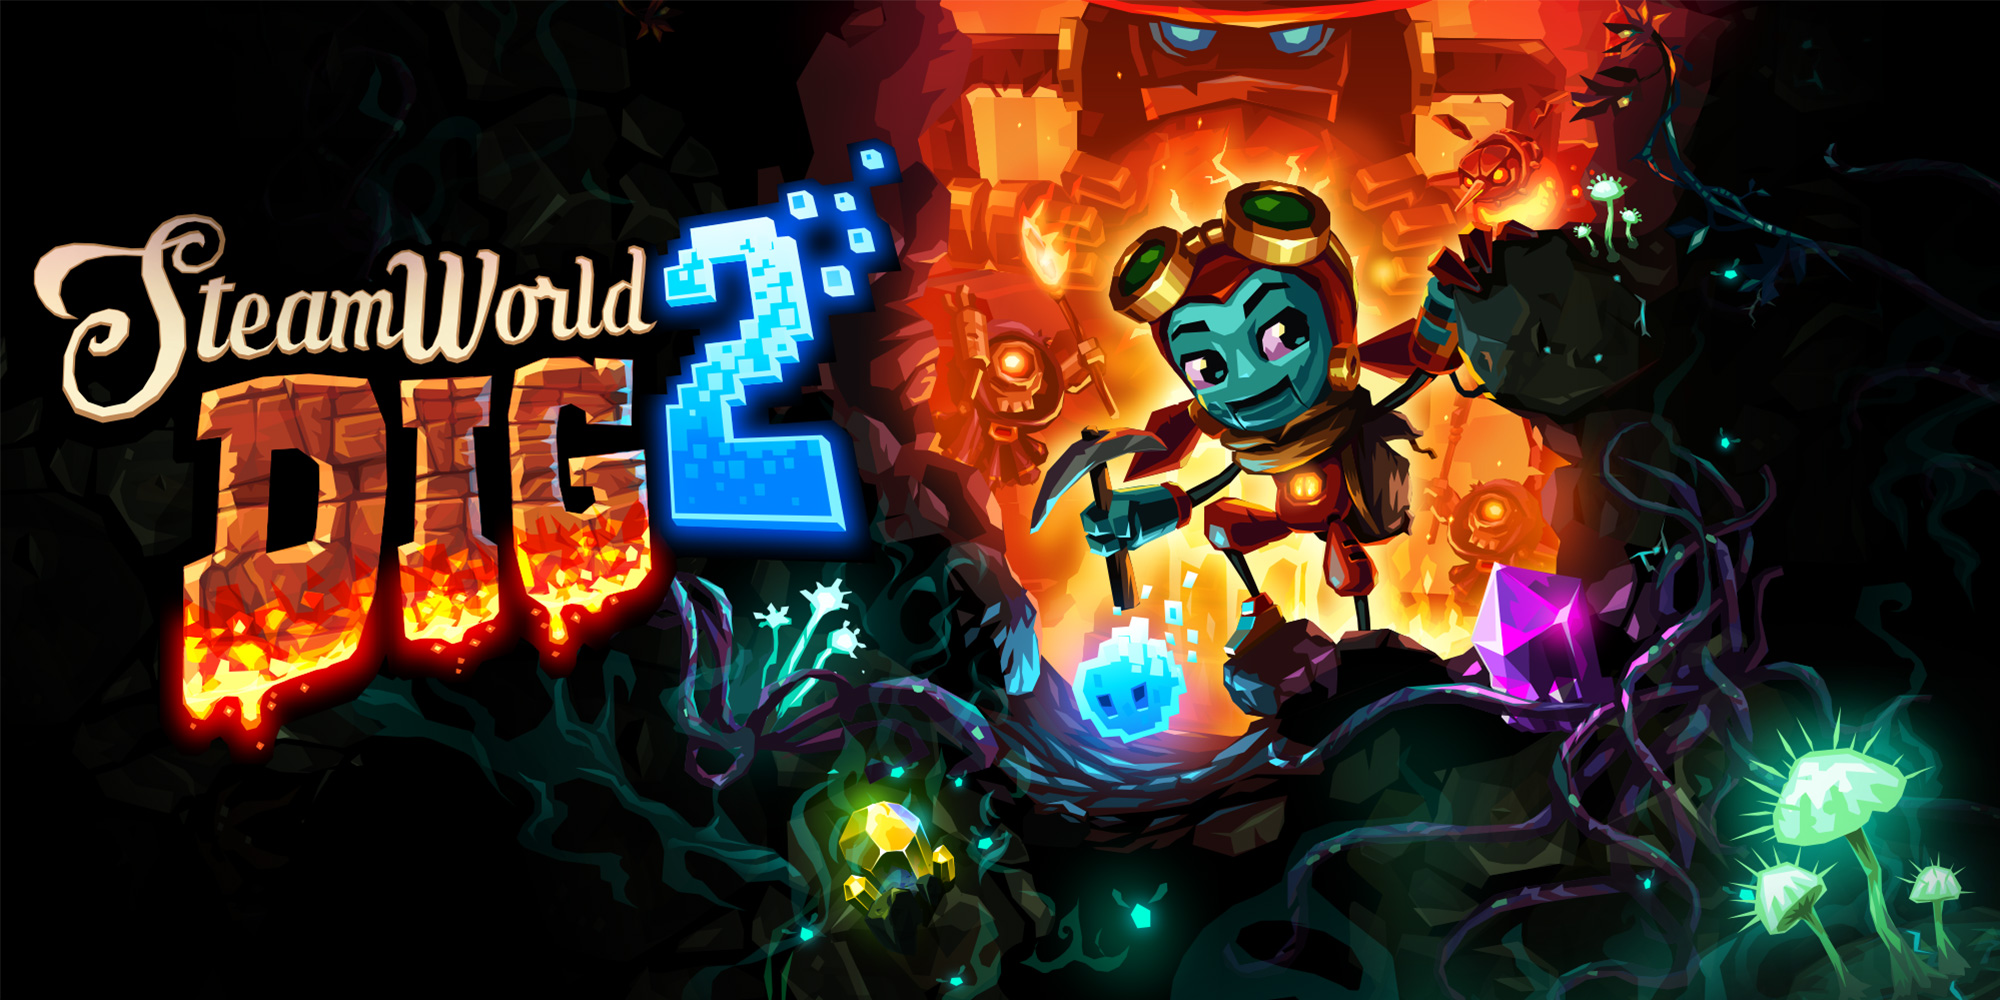 Digger and Better: The making of SteamWorld Dig 2